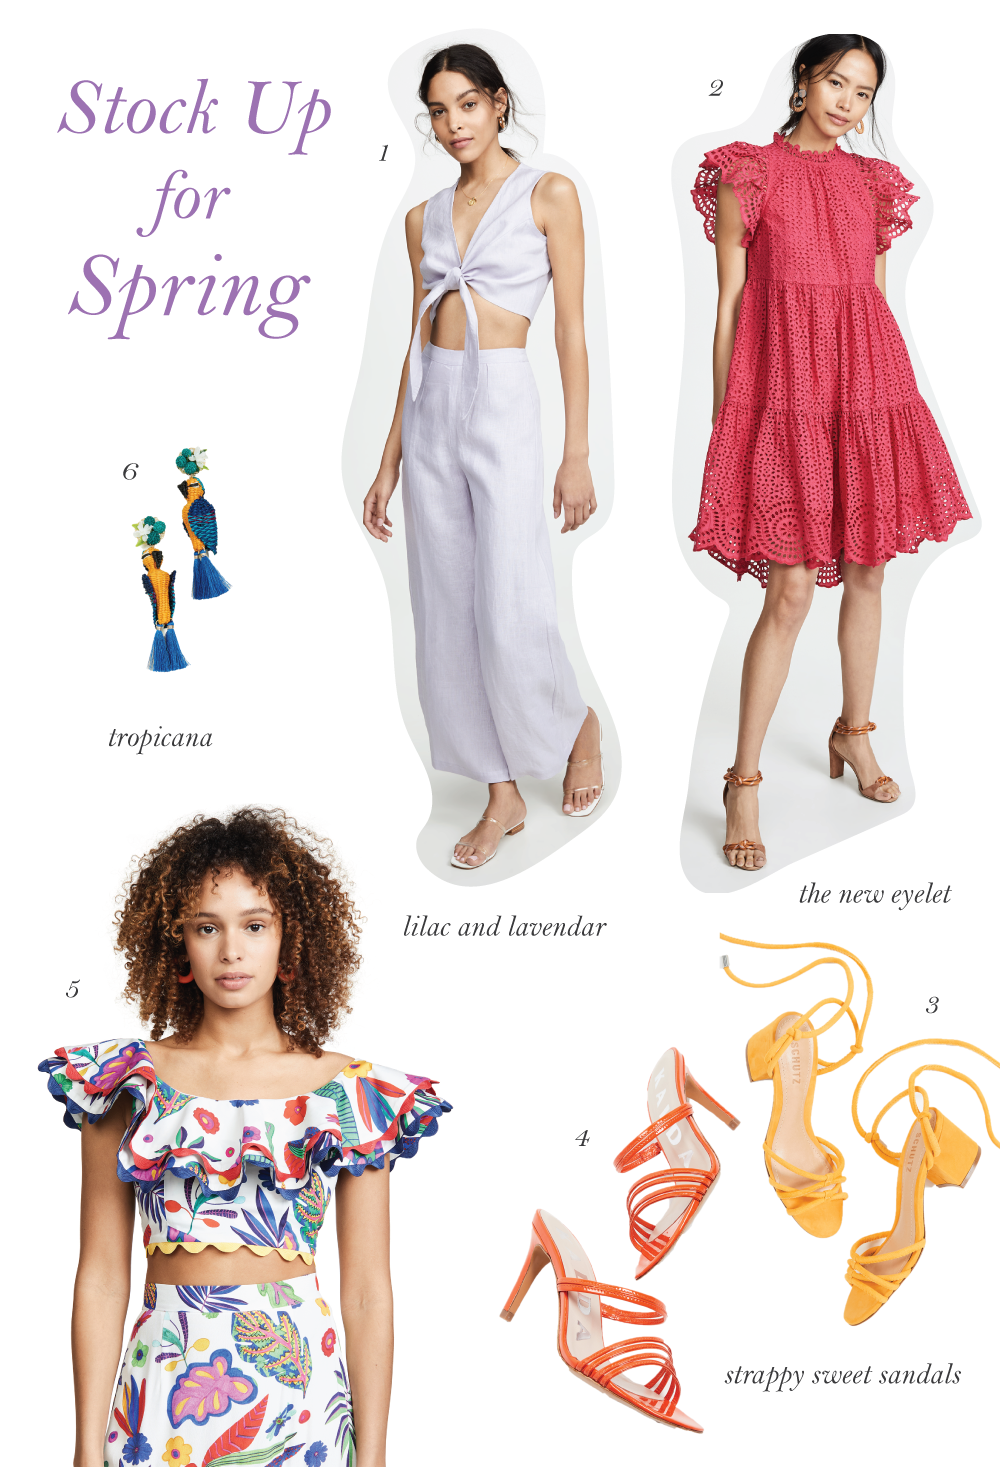 Shopbop Spring Sale Trends